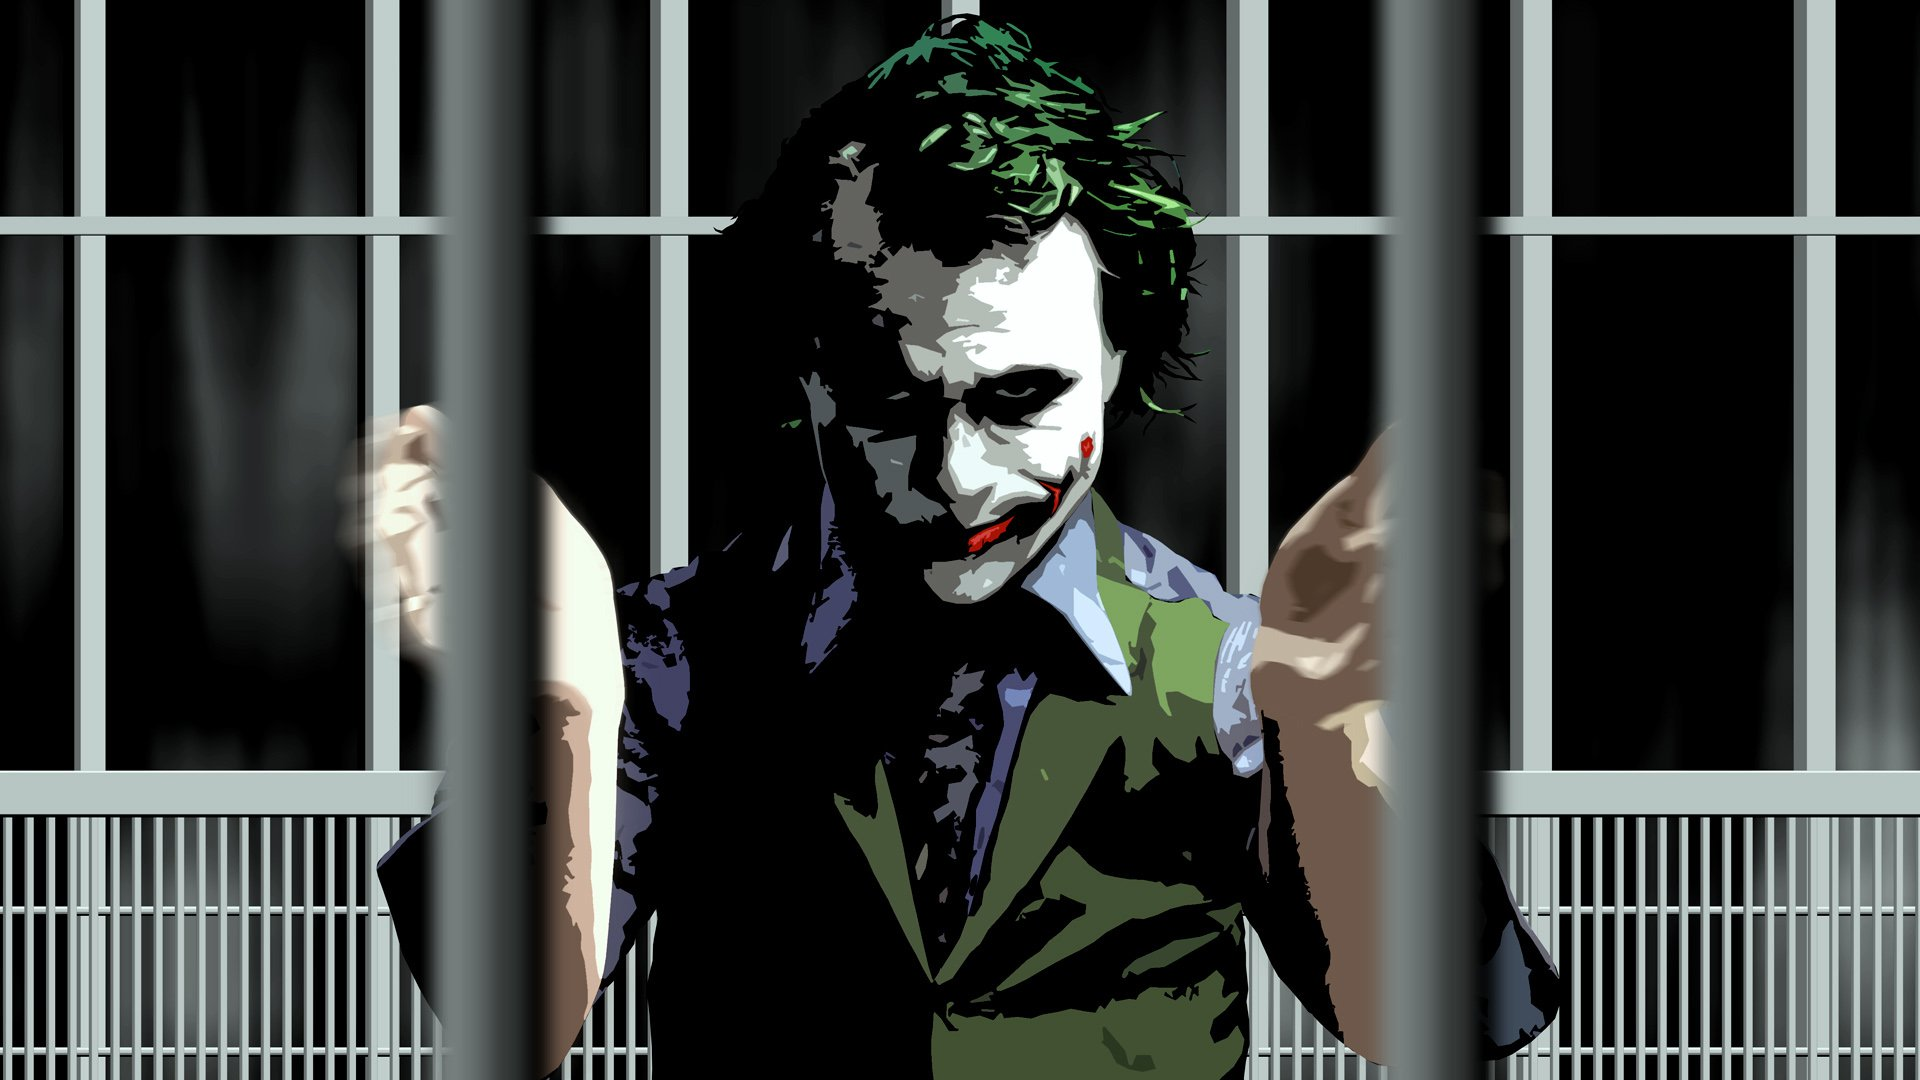 The Joker The Dark Knight Wallpaper 1920x1080 345494